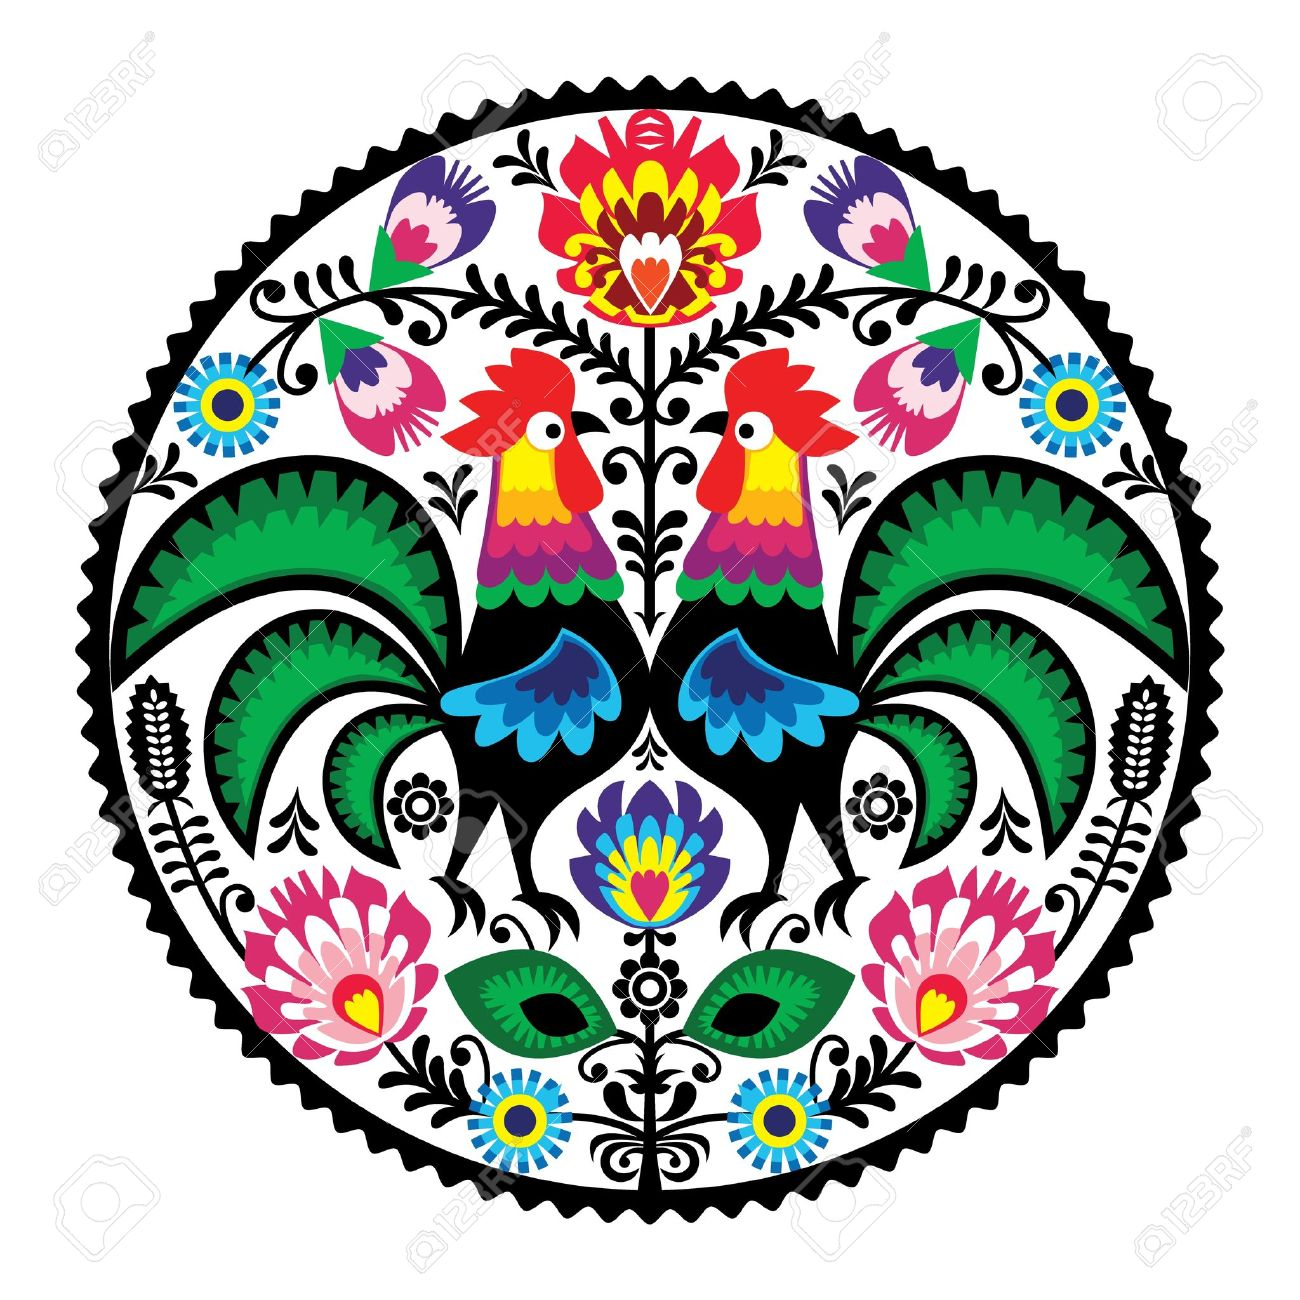 Polish floral embroidery with roosters - traditional folk pattern Stock Vector - 18755134